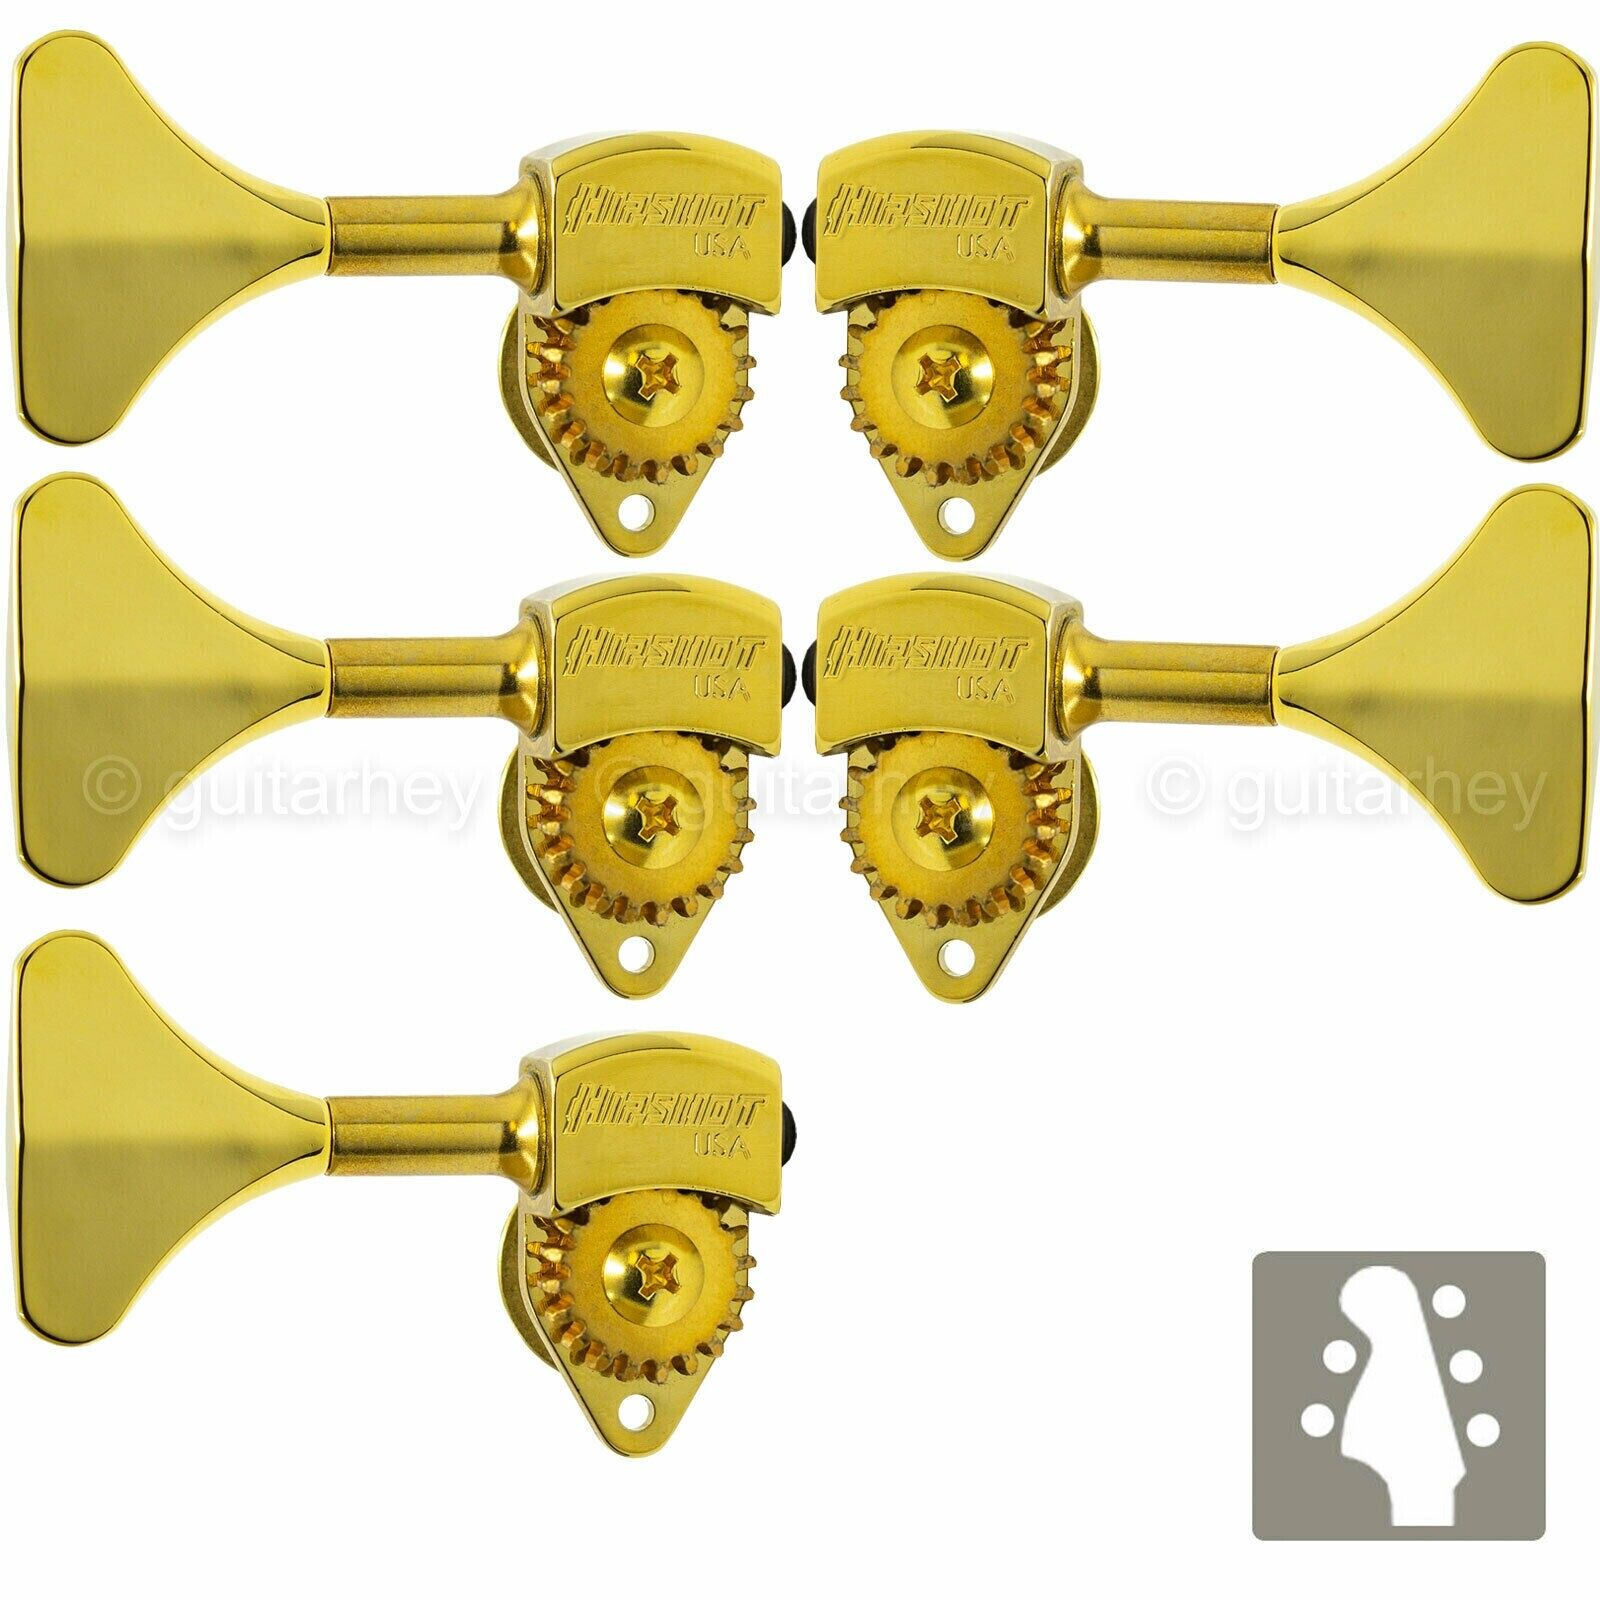 NEW Hipshot USA HB6 3 8  Ultralite® Bass Tuning L2+R3 Set Y Key 2x3 - Gold